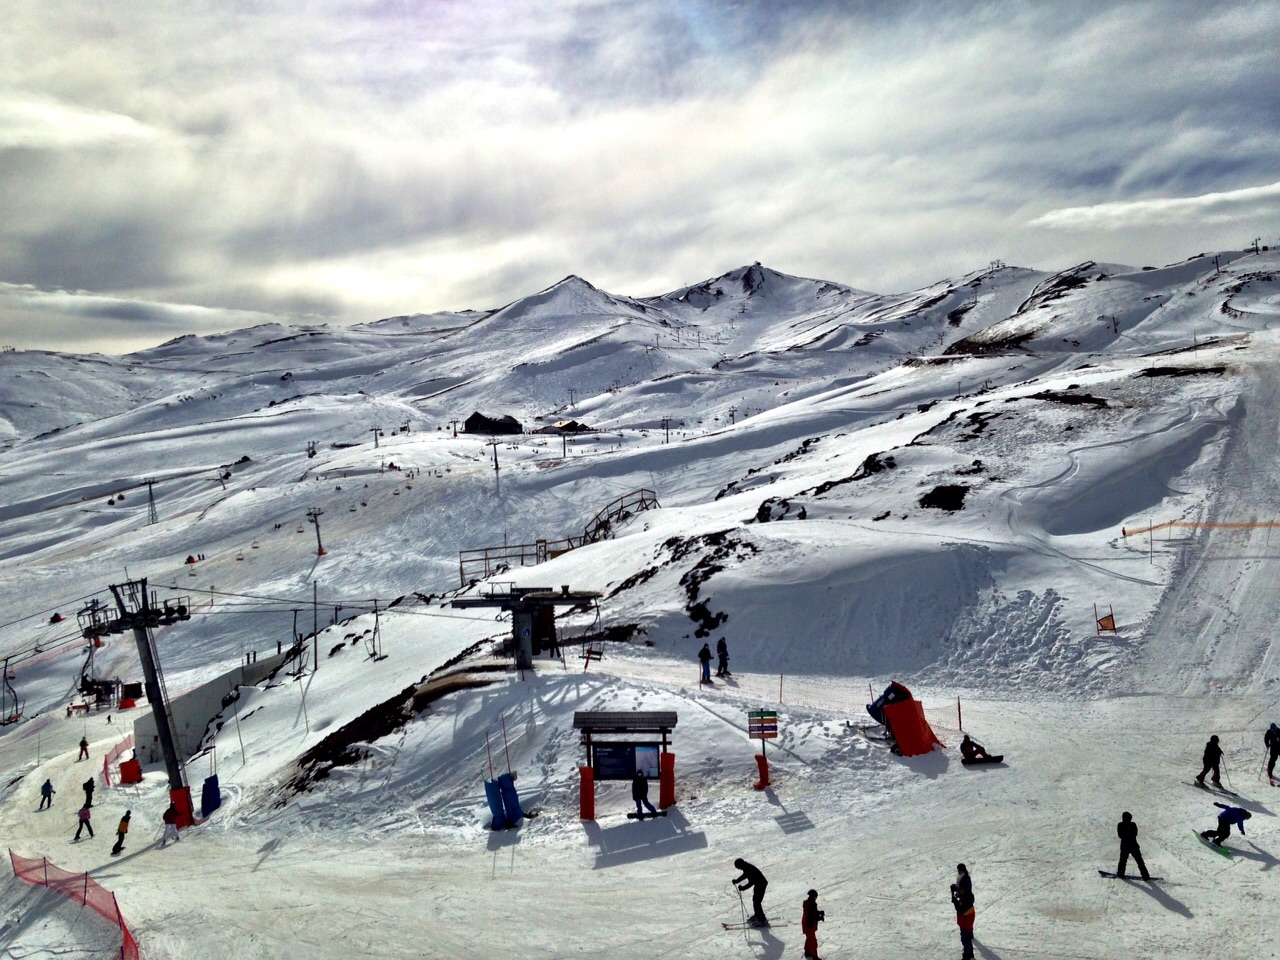 Guia Valle Nevado